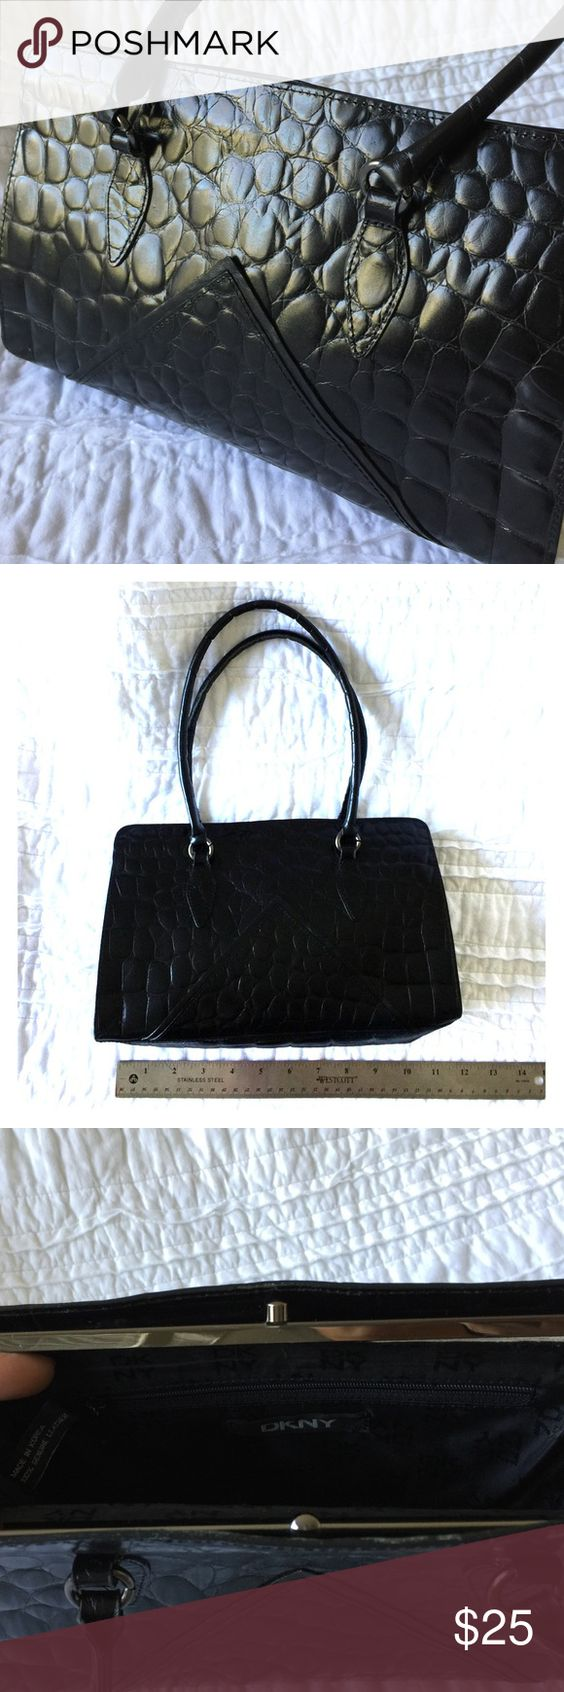 """DKNY Leather small shoulder bag This is a super chic bag but it needs a repair to the clasp. See picture. Black leather. Small zipper pocket inside. Goes with everything. 11"""" long, 7"""" high, 3"""" deep. DKNY Bags Shoulder Bags"""